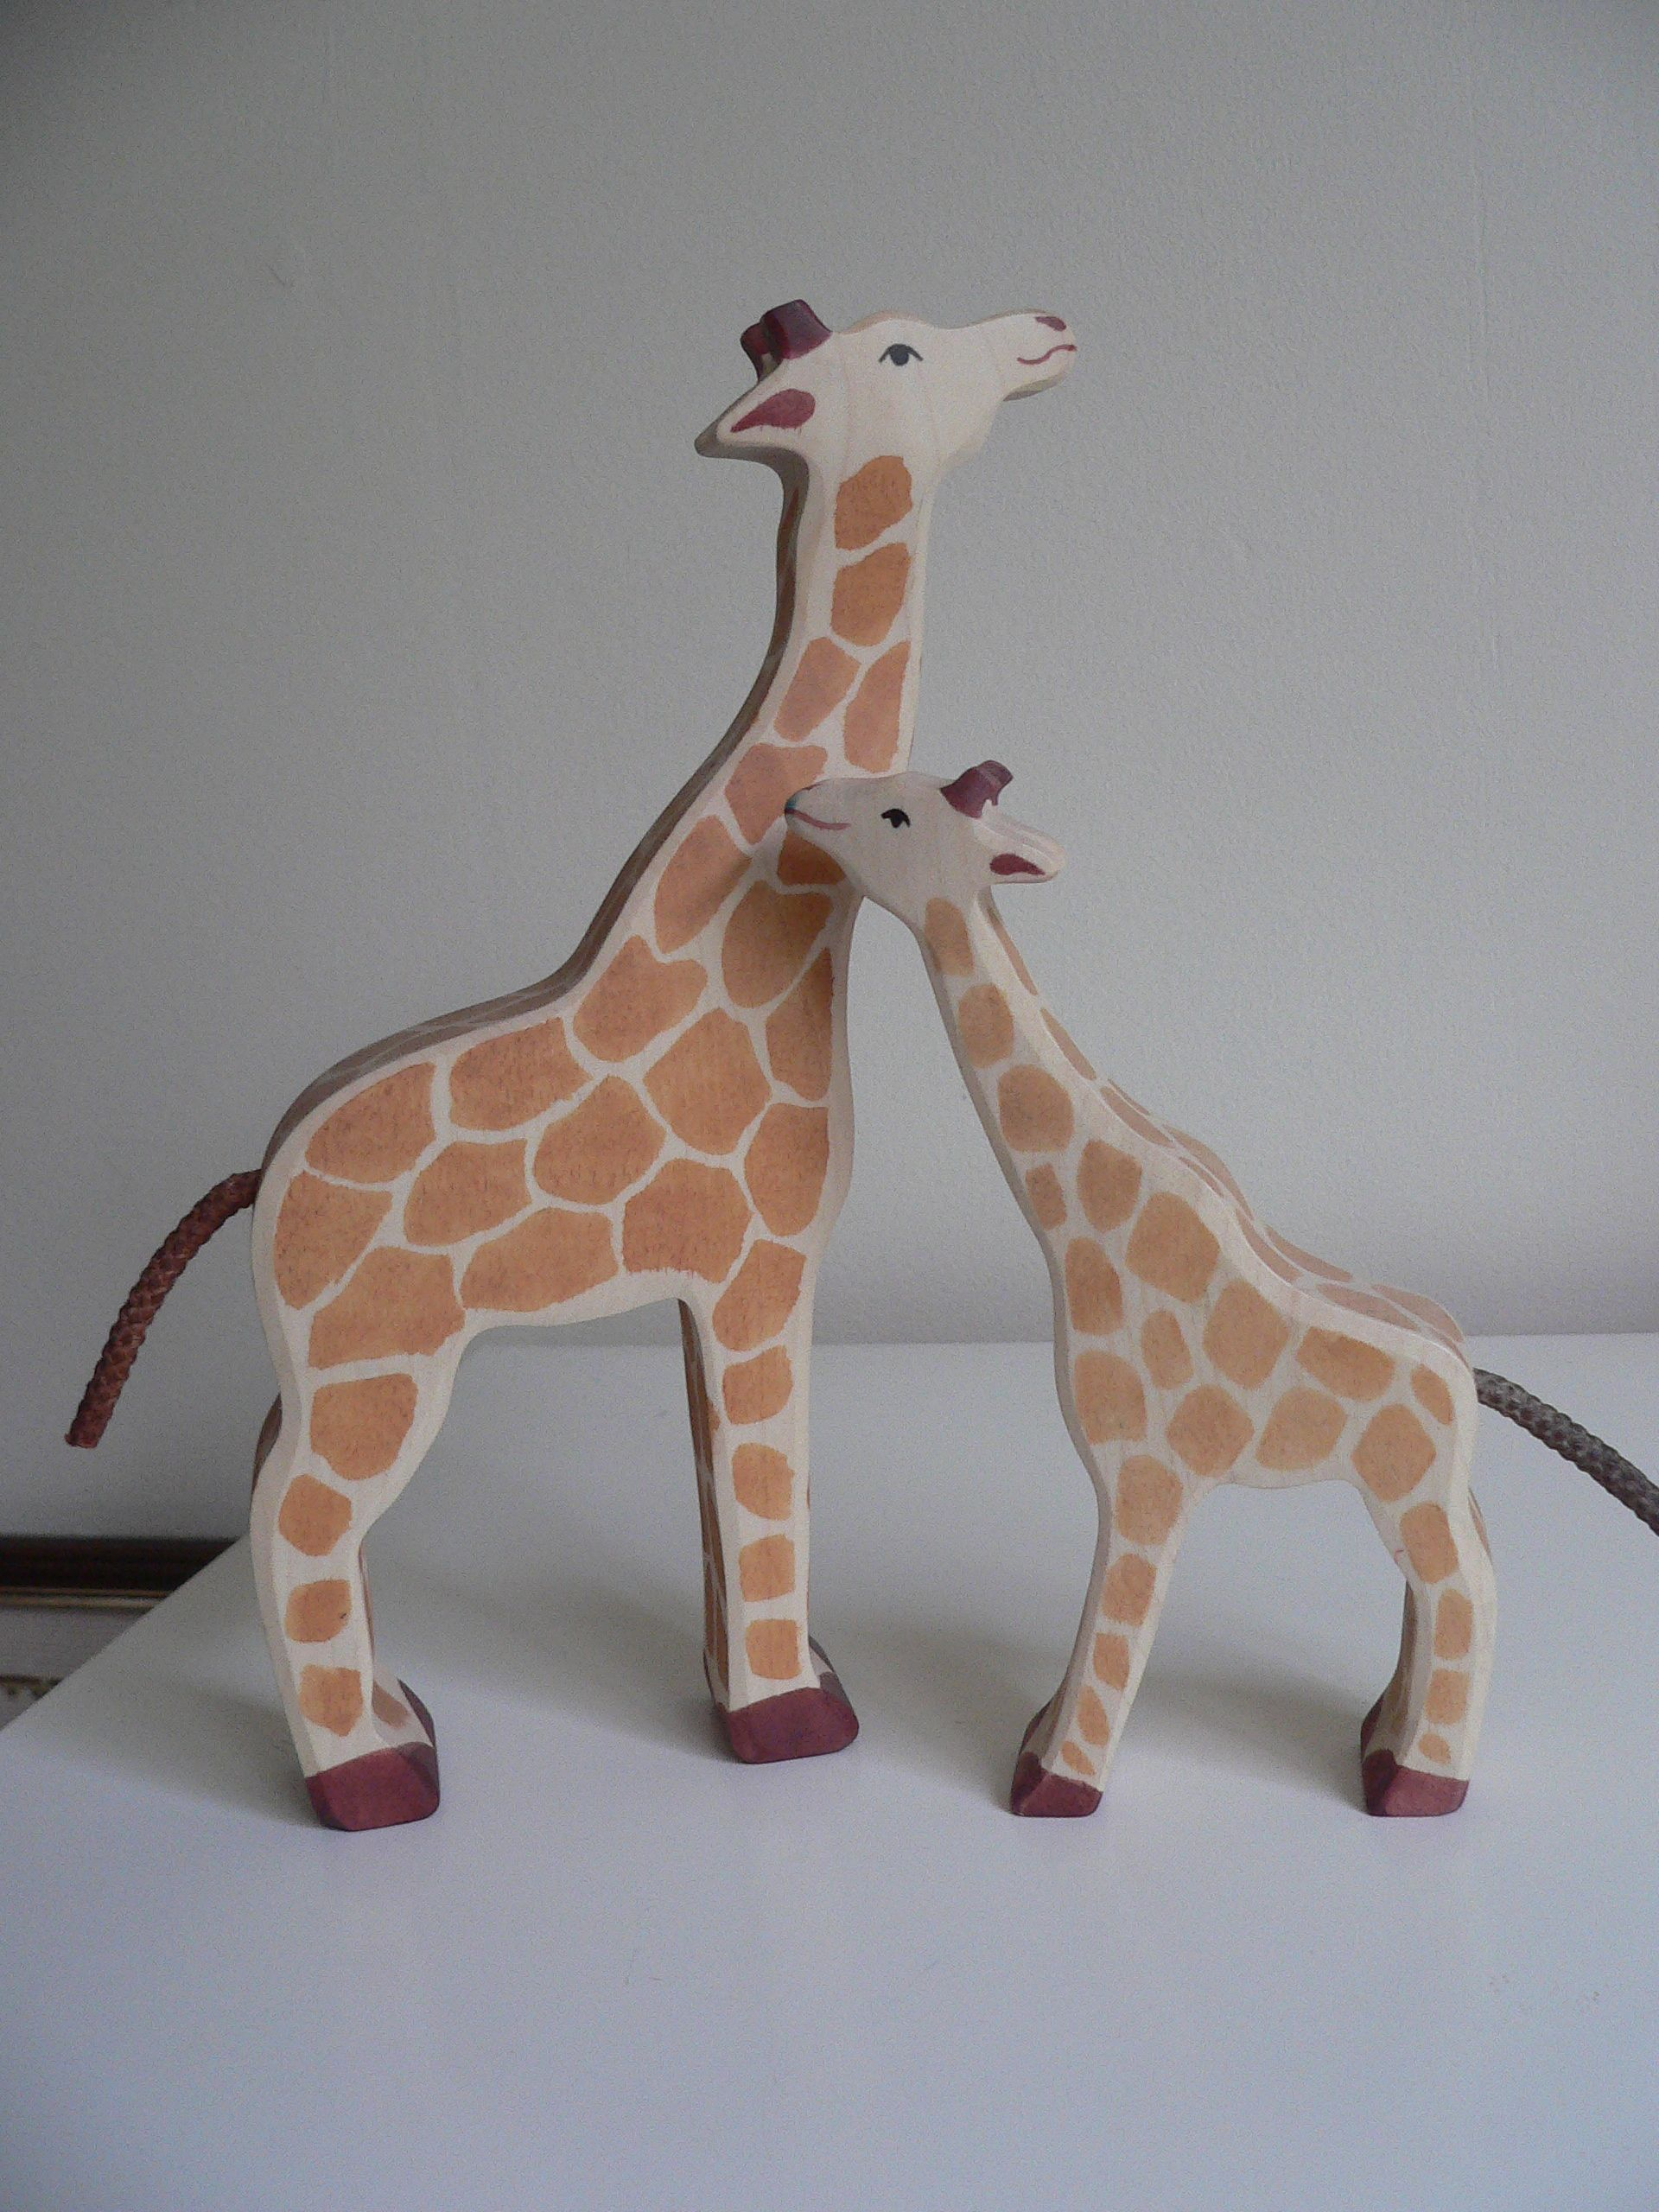 Action Figures Animals & Dinosaurs Holztiger Giraffe Wooden Figure